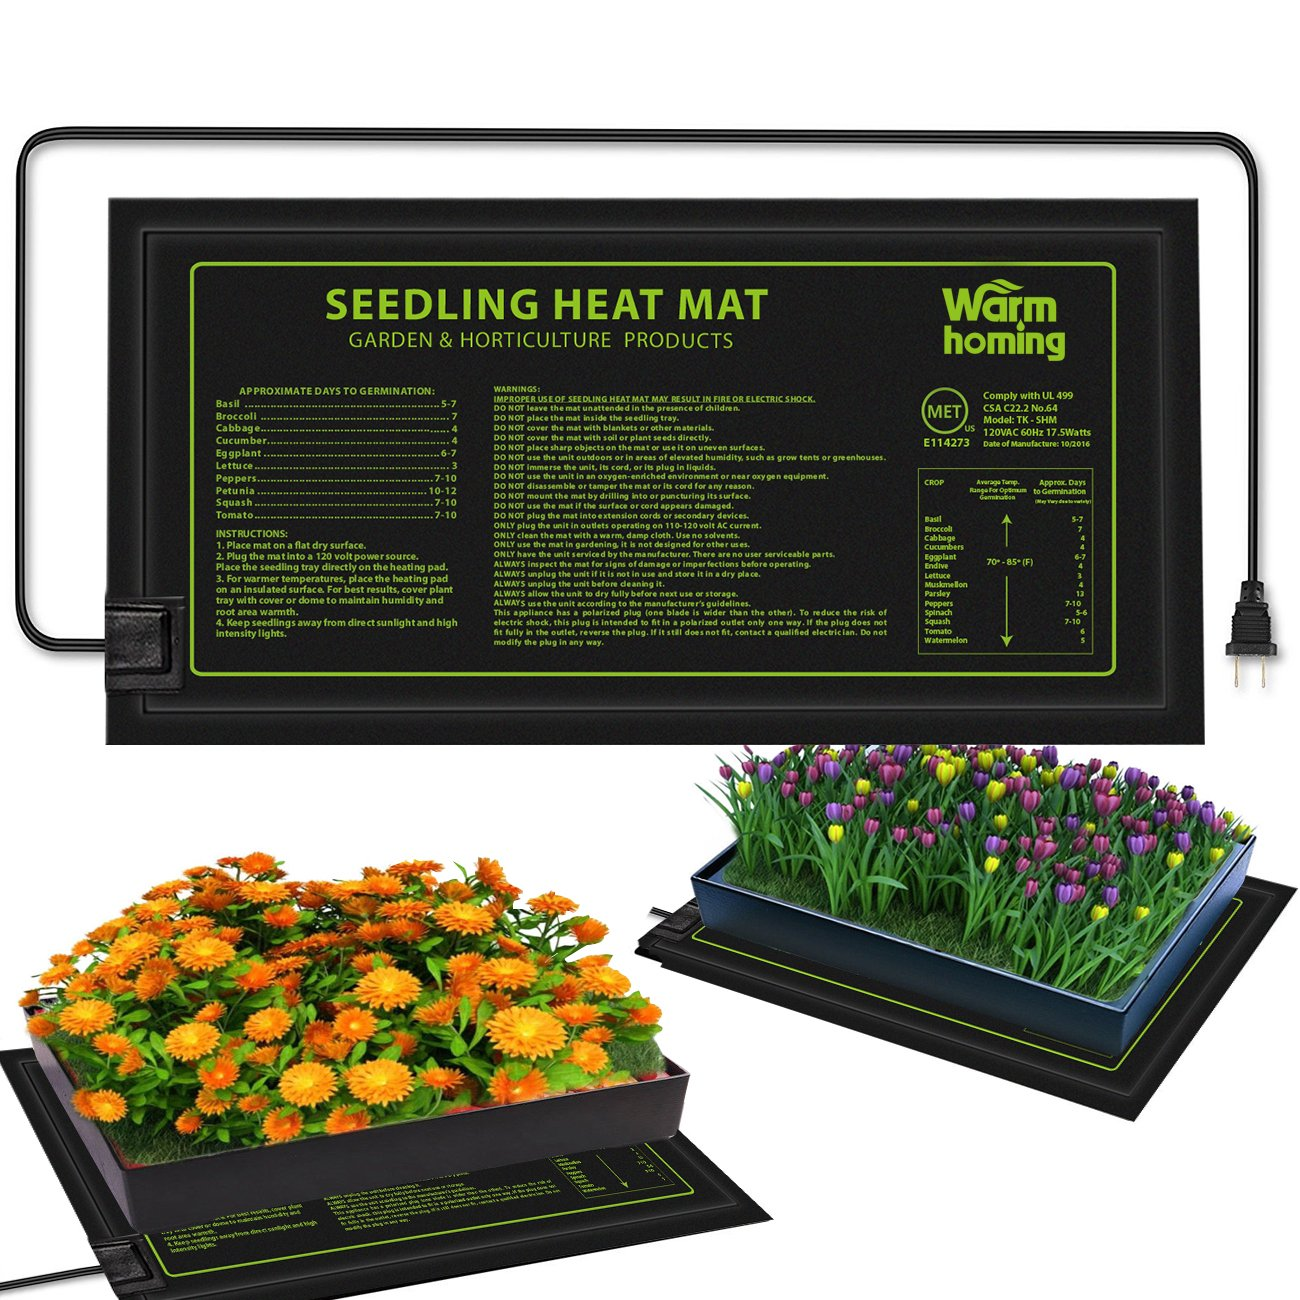 Seedling Heat Mat, Warmhoming Durable Waterproof Seedling Heating Mat Germination Station Heat Mat, Hydroponic Heating Pad 18.5'' x 8.5'' Using for Seed Starter In Home Garden